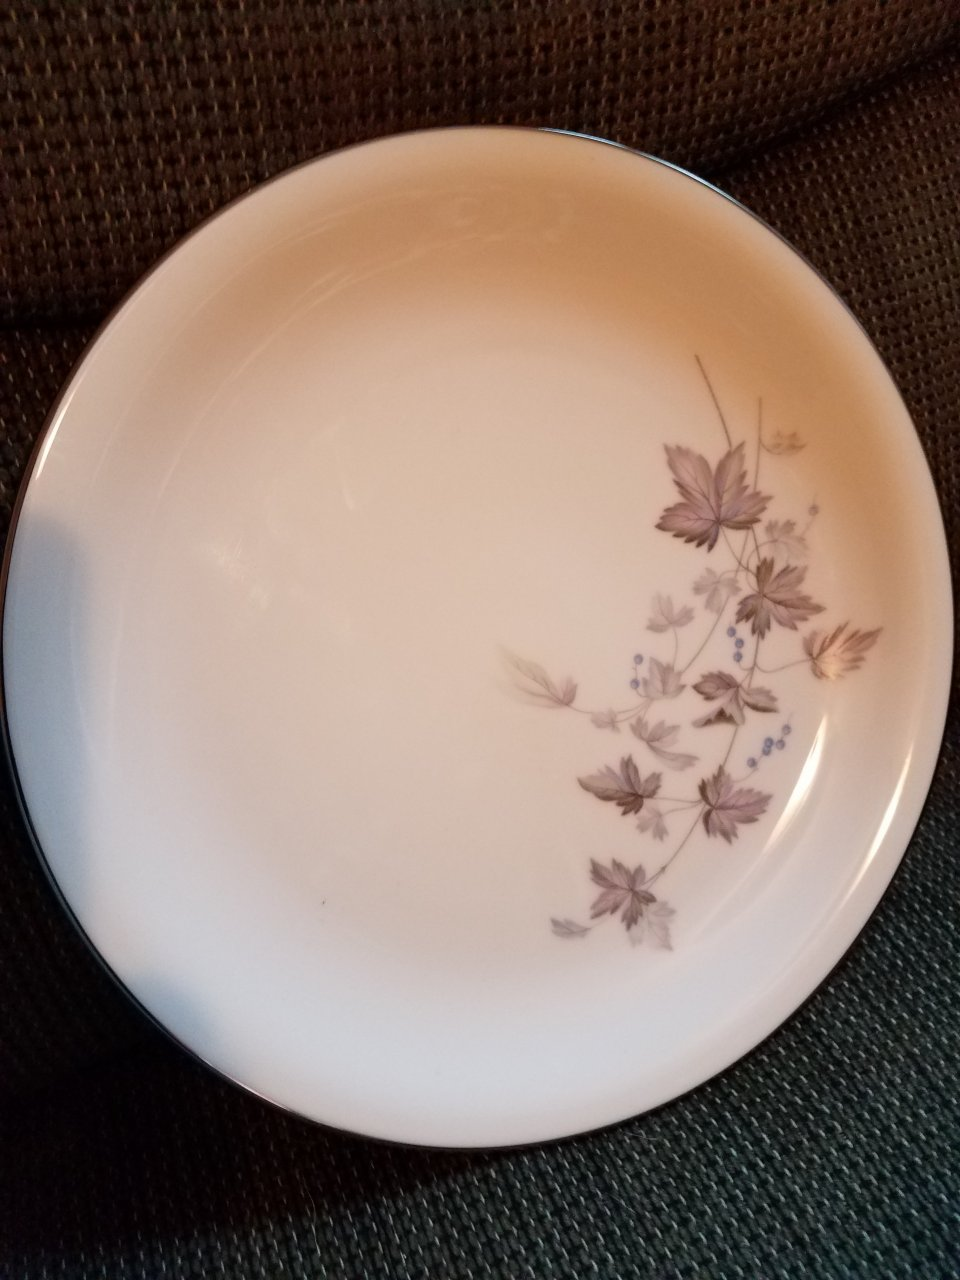 Enthralling Can You Tell Me Value This I Inherited A Complete Tablesetting For Noritake China Artifact Collectors Noritake China Patterns From 1950s Noritake China Patterns Leilani All Serving All houzz-03 Noritake China Patterns